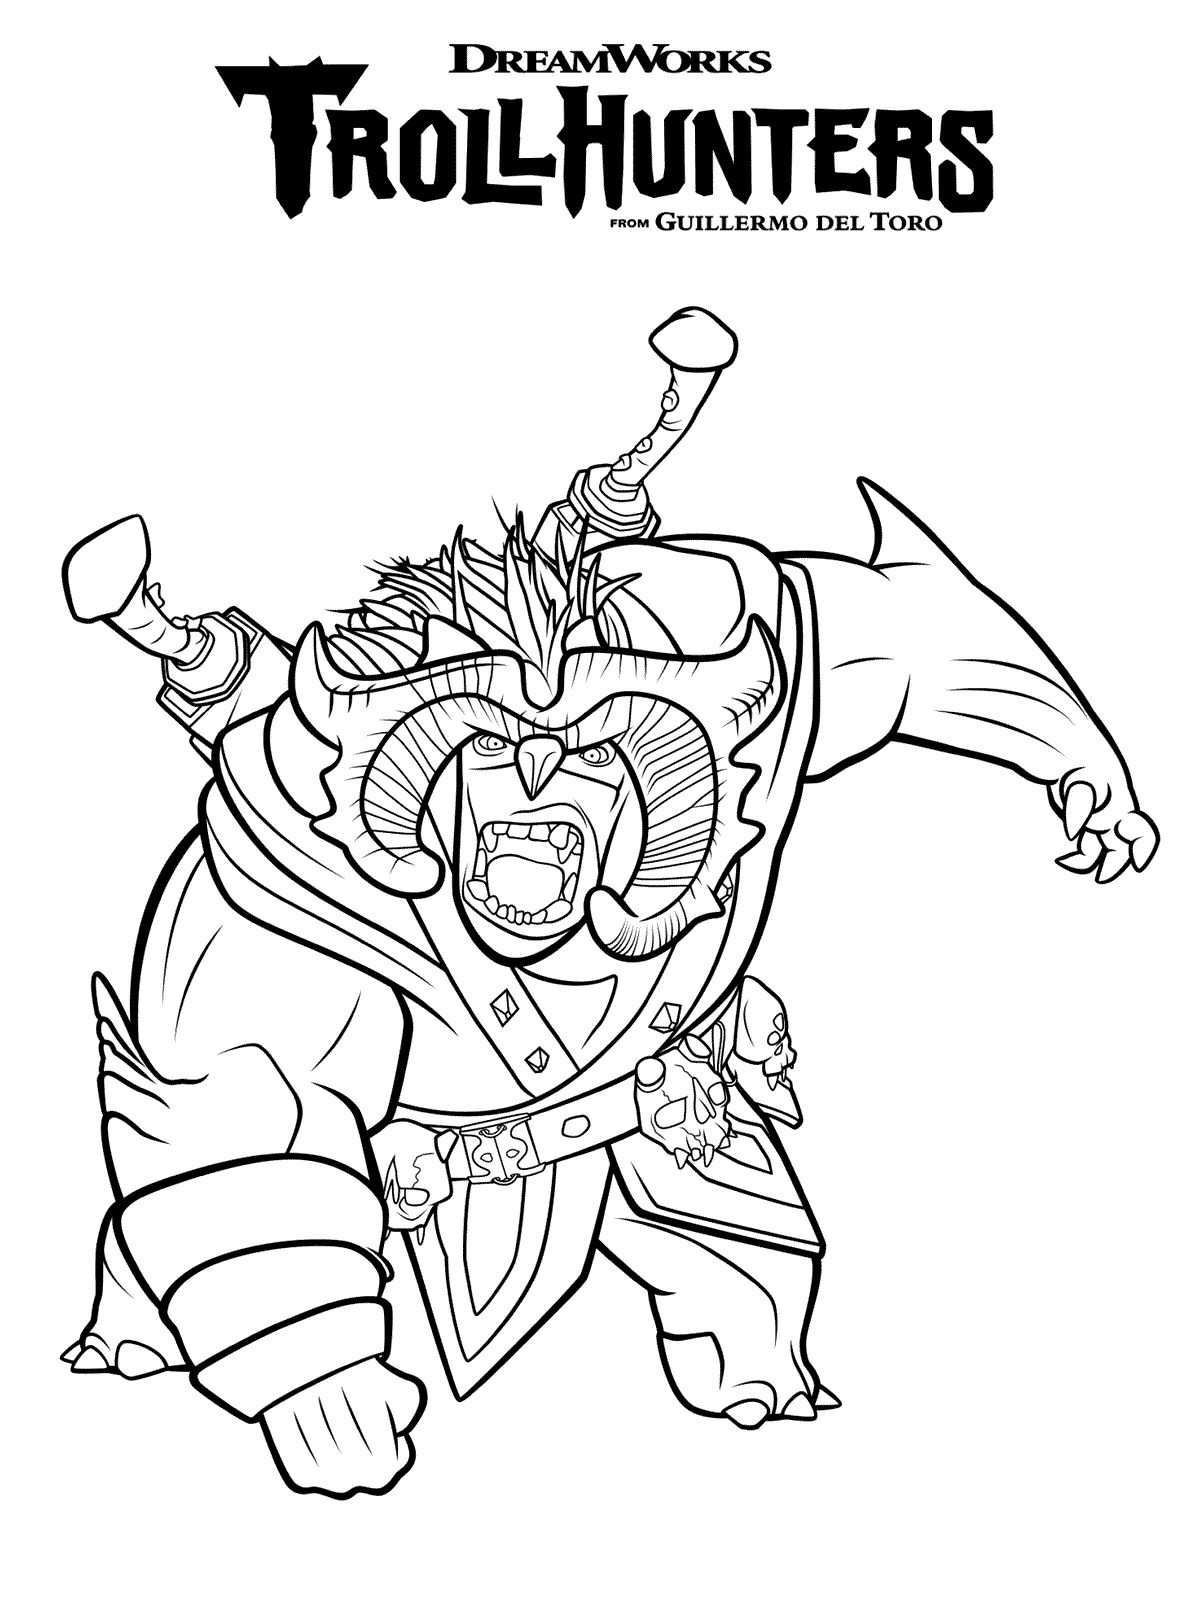 trollhunters coloring pages Coloring page Trollhunters: Scary Bular | Fandoms | Coloring pages  trollhunters coloring pages